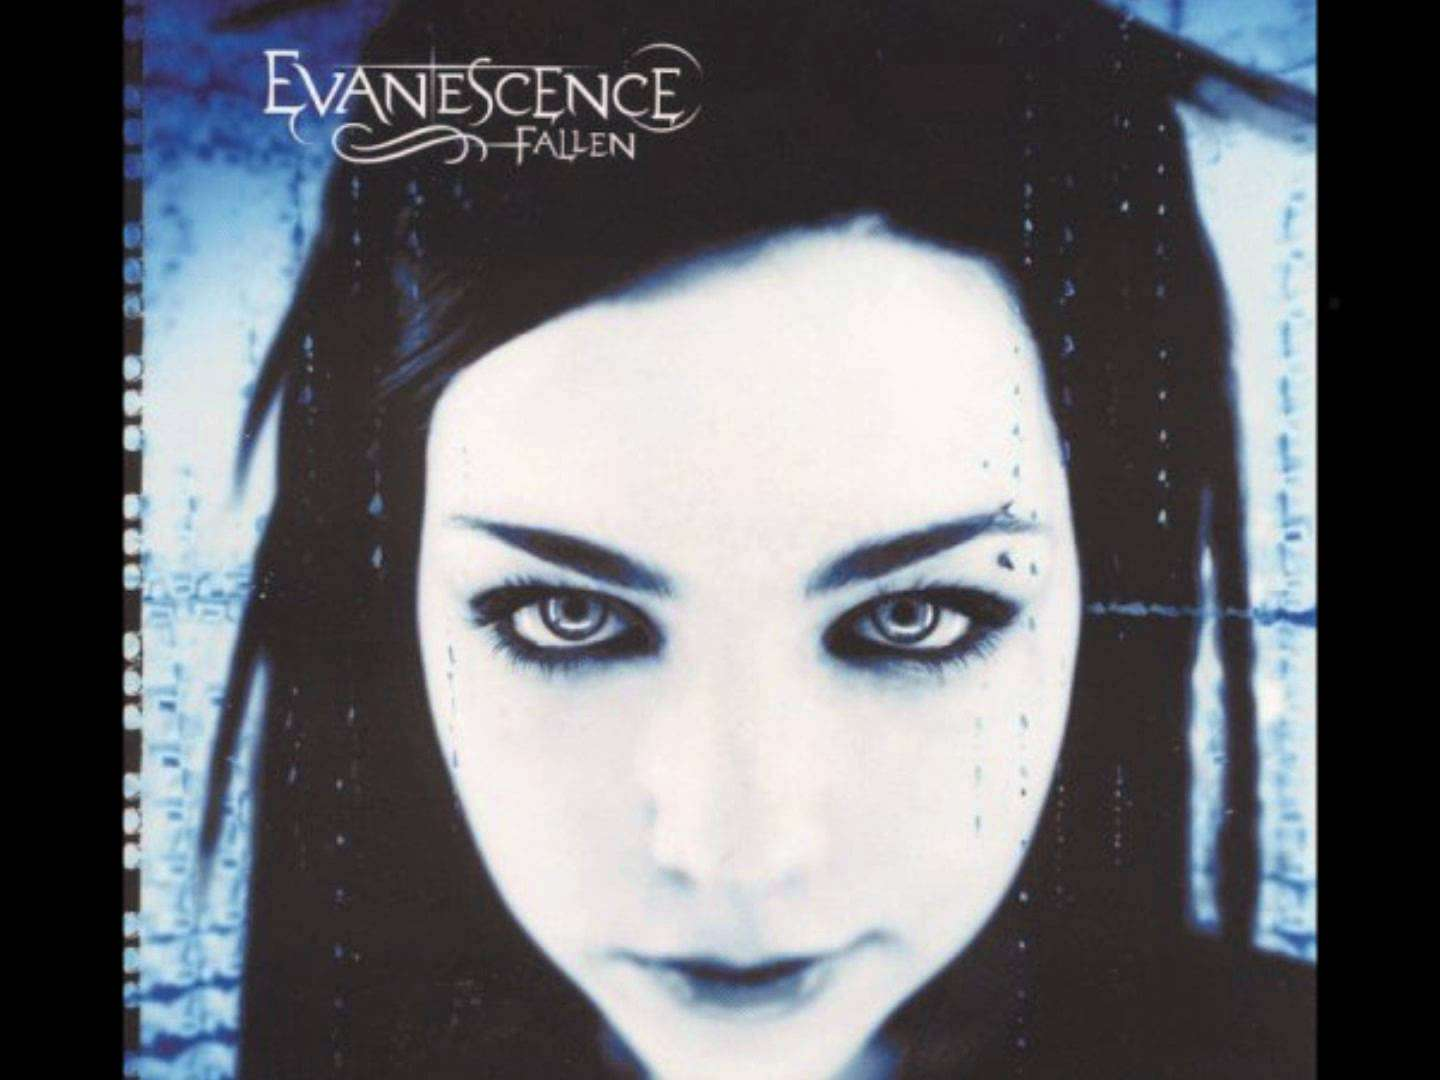 Evanescence - Fallen - YouTube